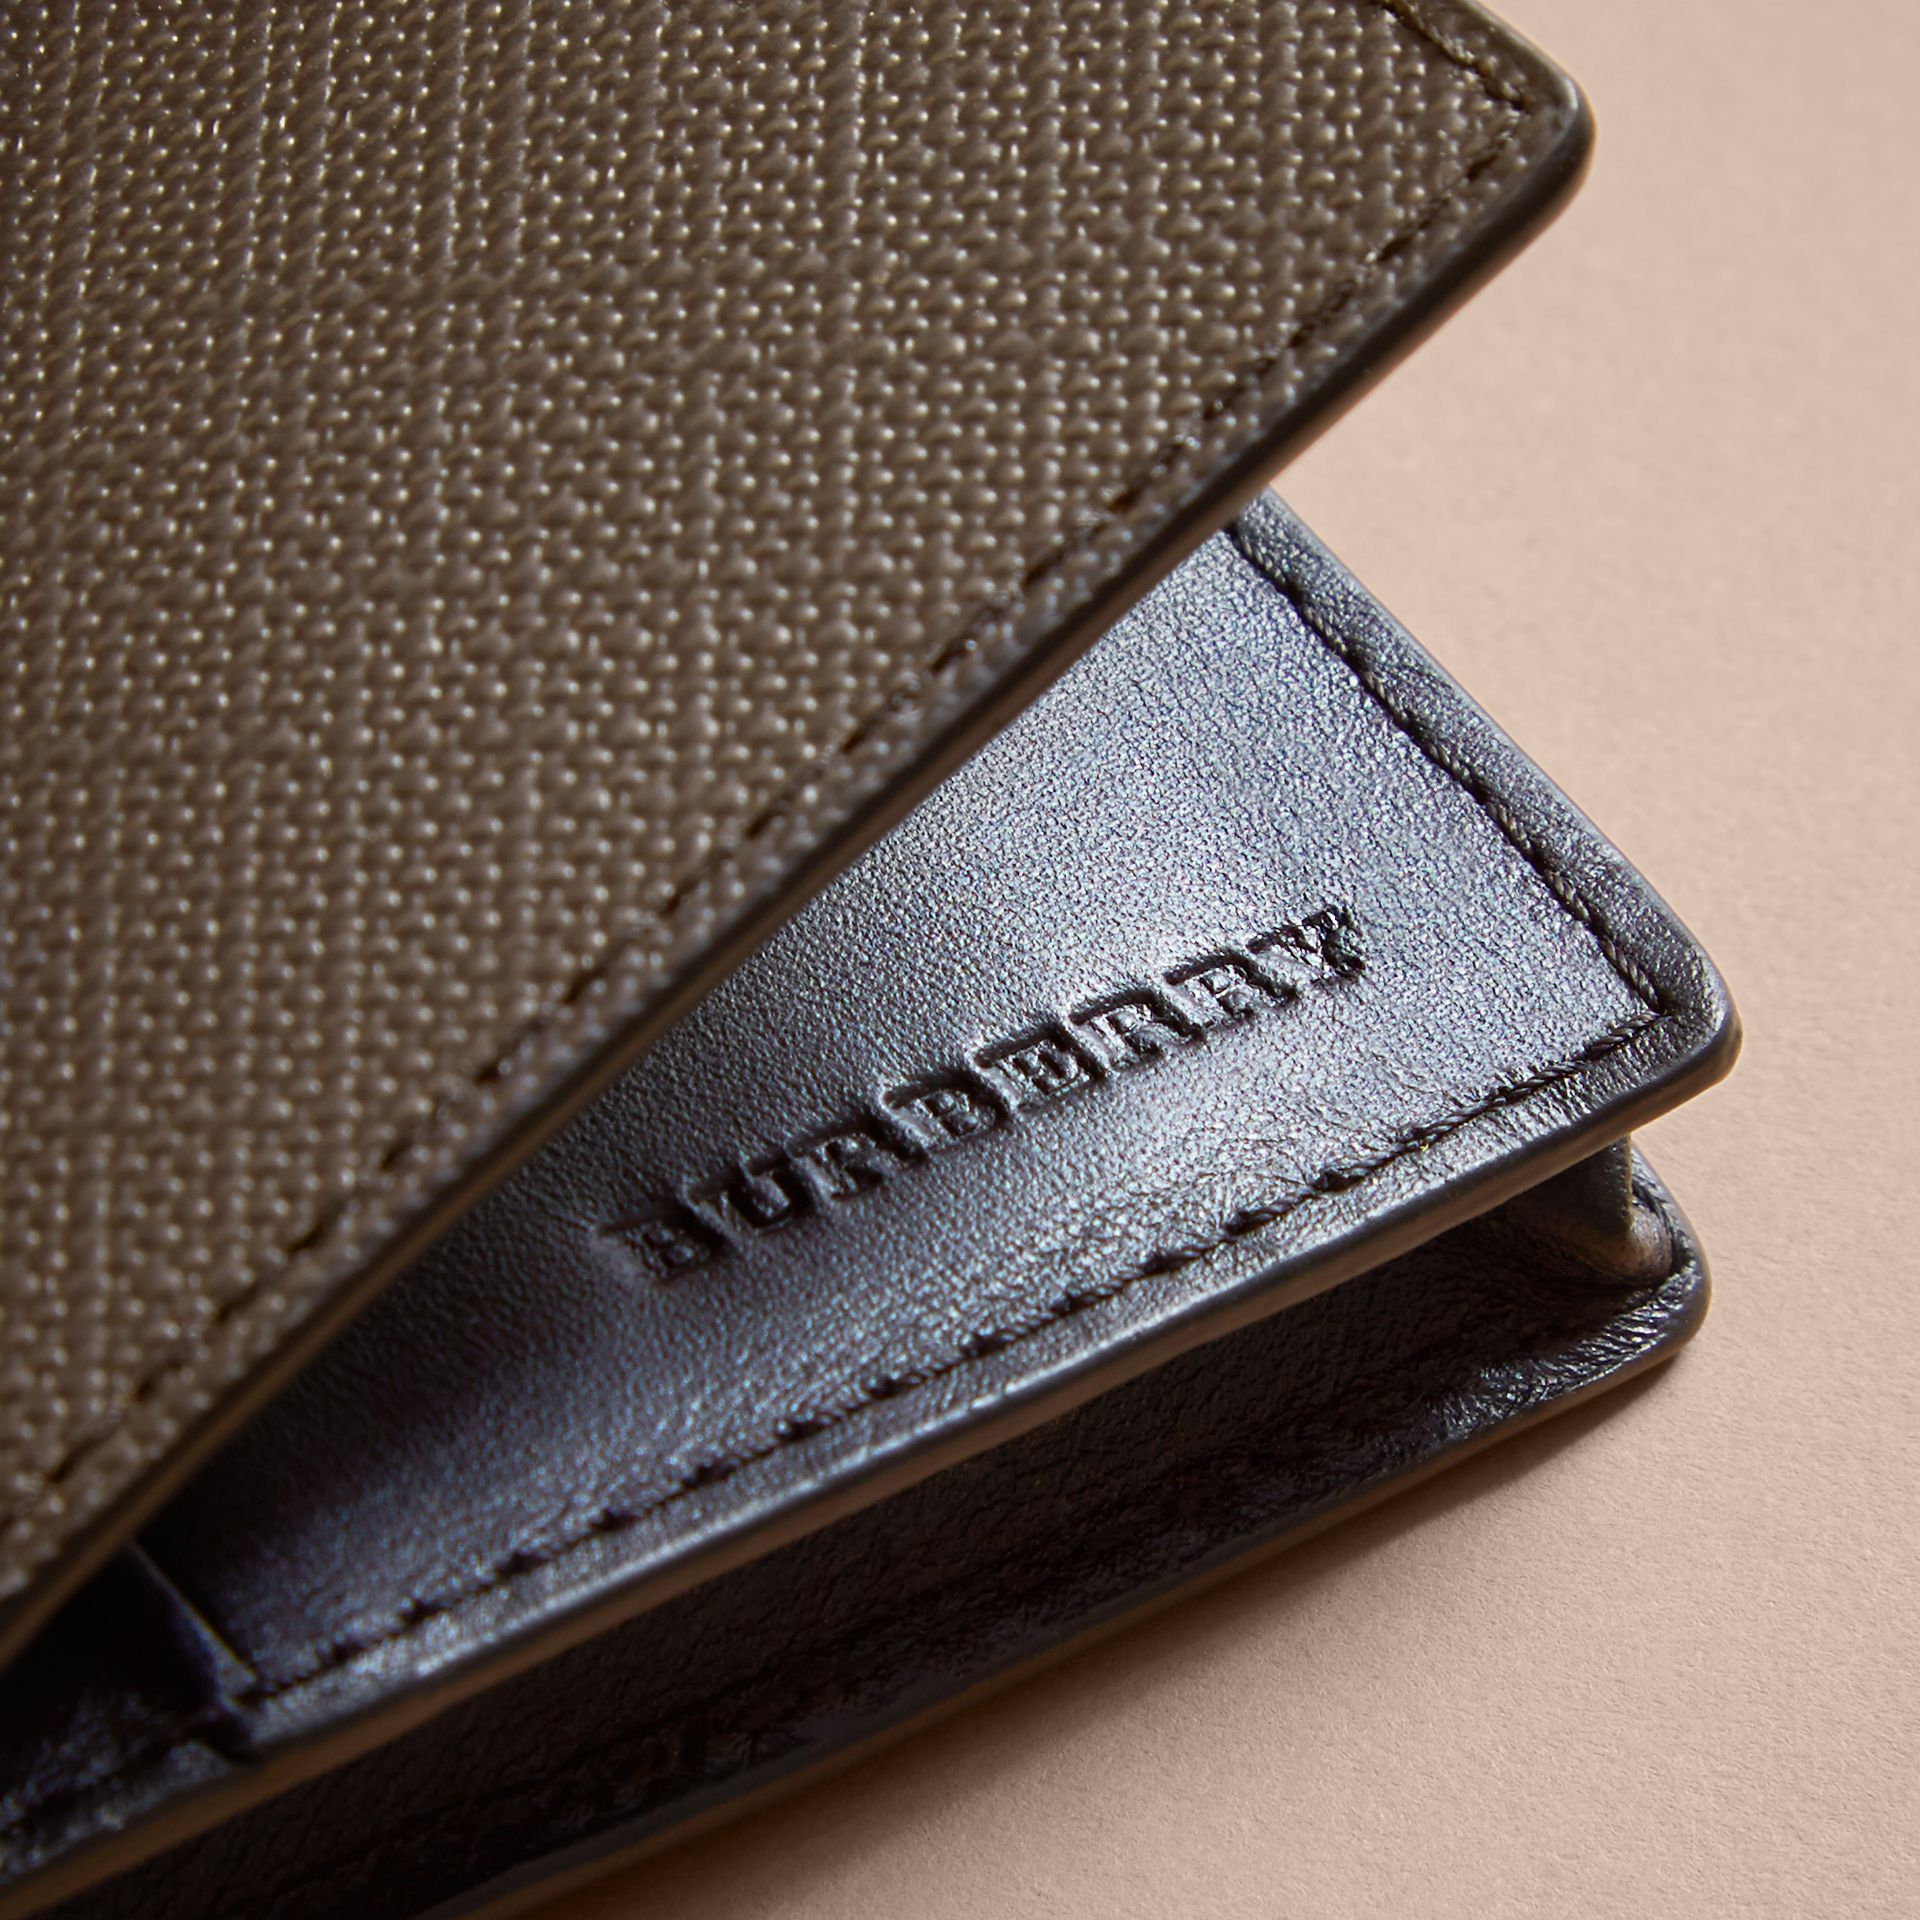 London Check and Leather Folding Card Case in Chocolate/black - Men | Burberry United Kingdom - gallery image 1